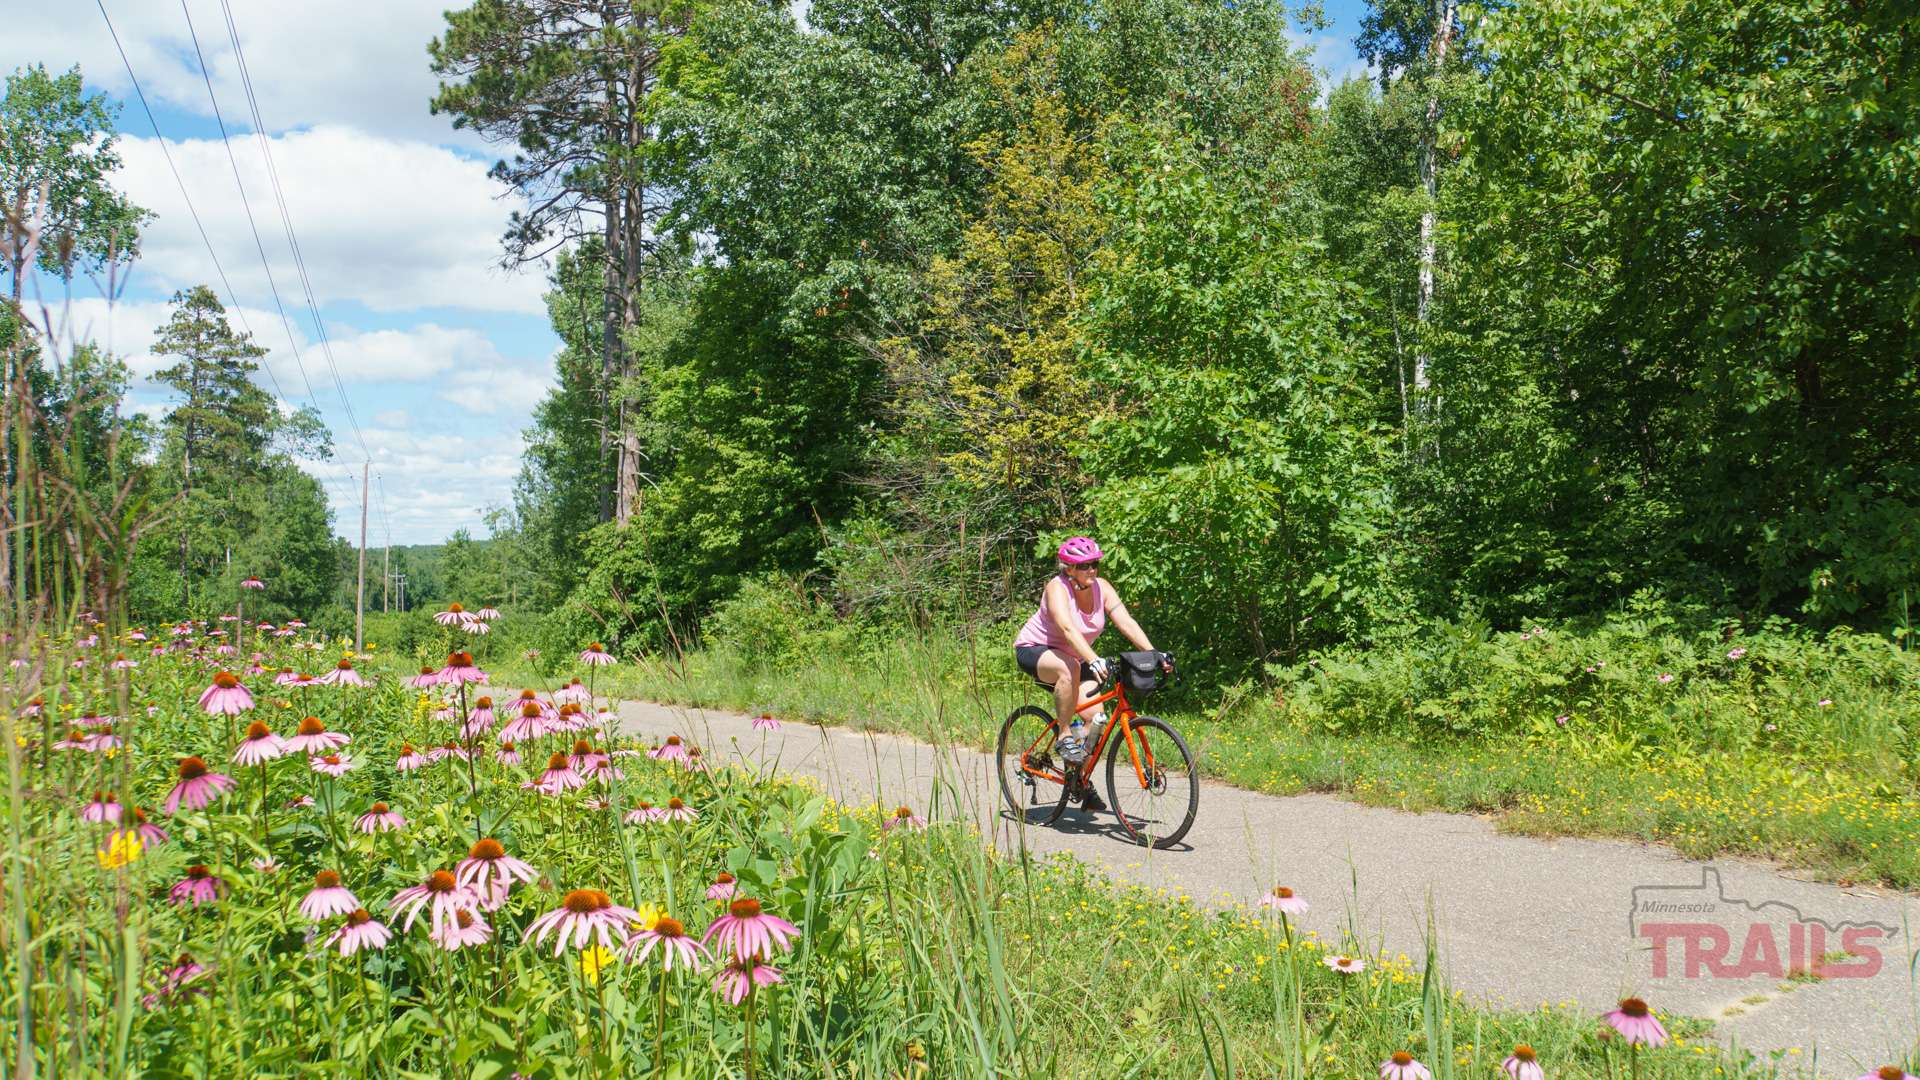 A woman rides a bike on a trail lined with flowers